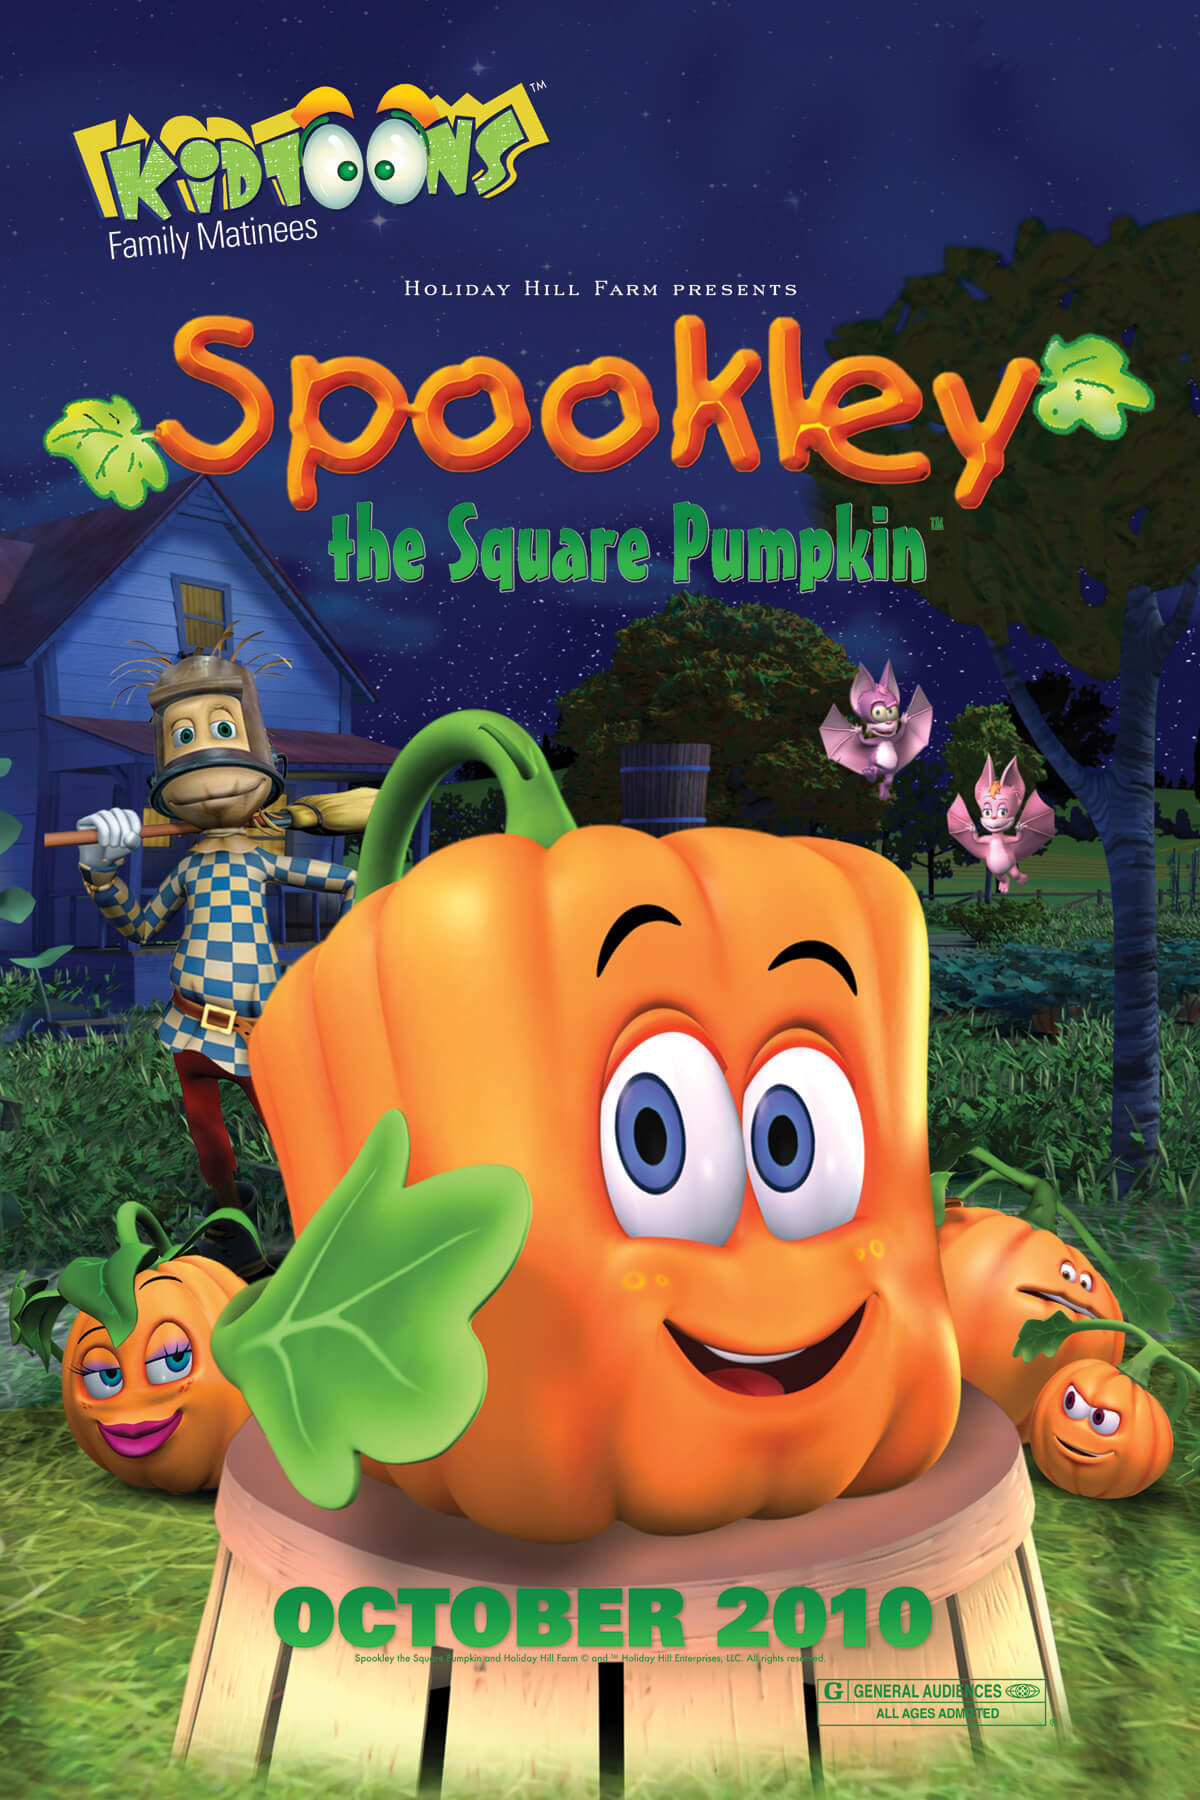 SPOOKLEY THE SQUARE PUMPKIN halloween movie